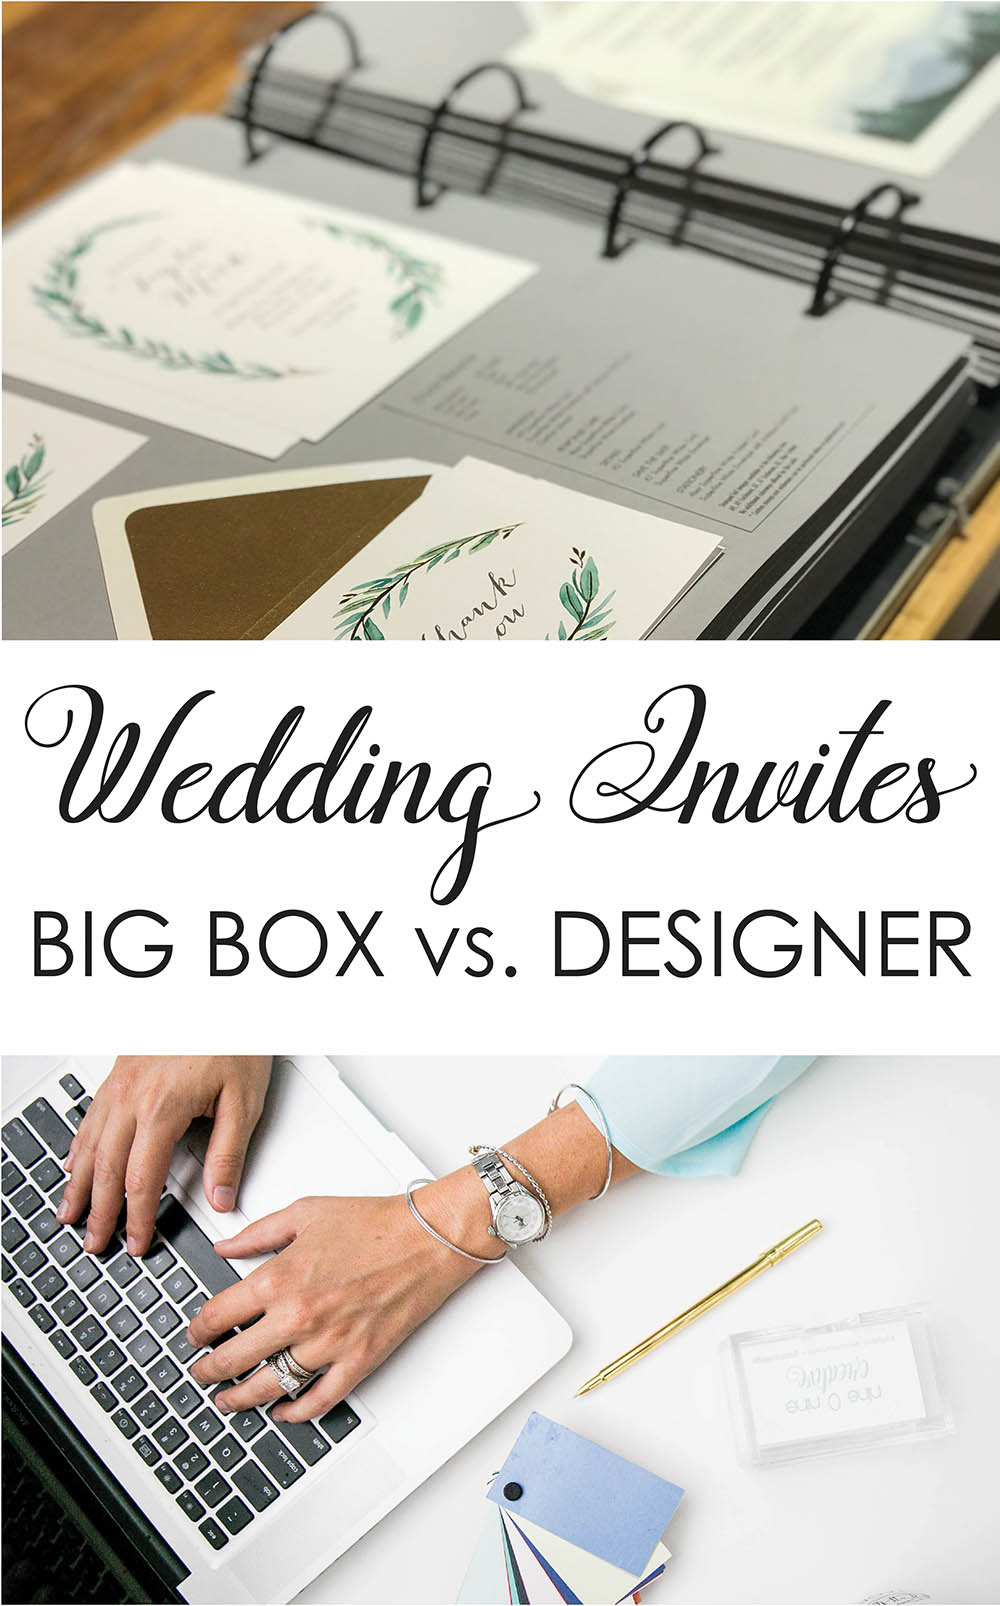 wedding invitations_big box vs. designer_pinterest.jpg